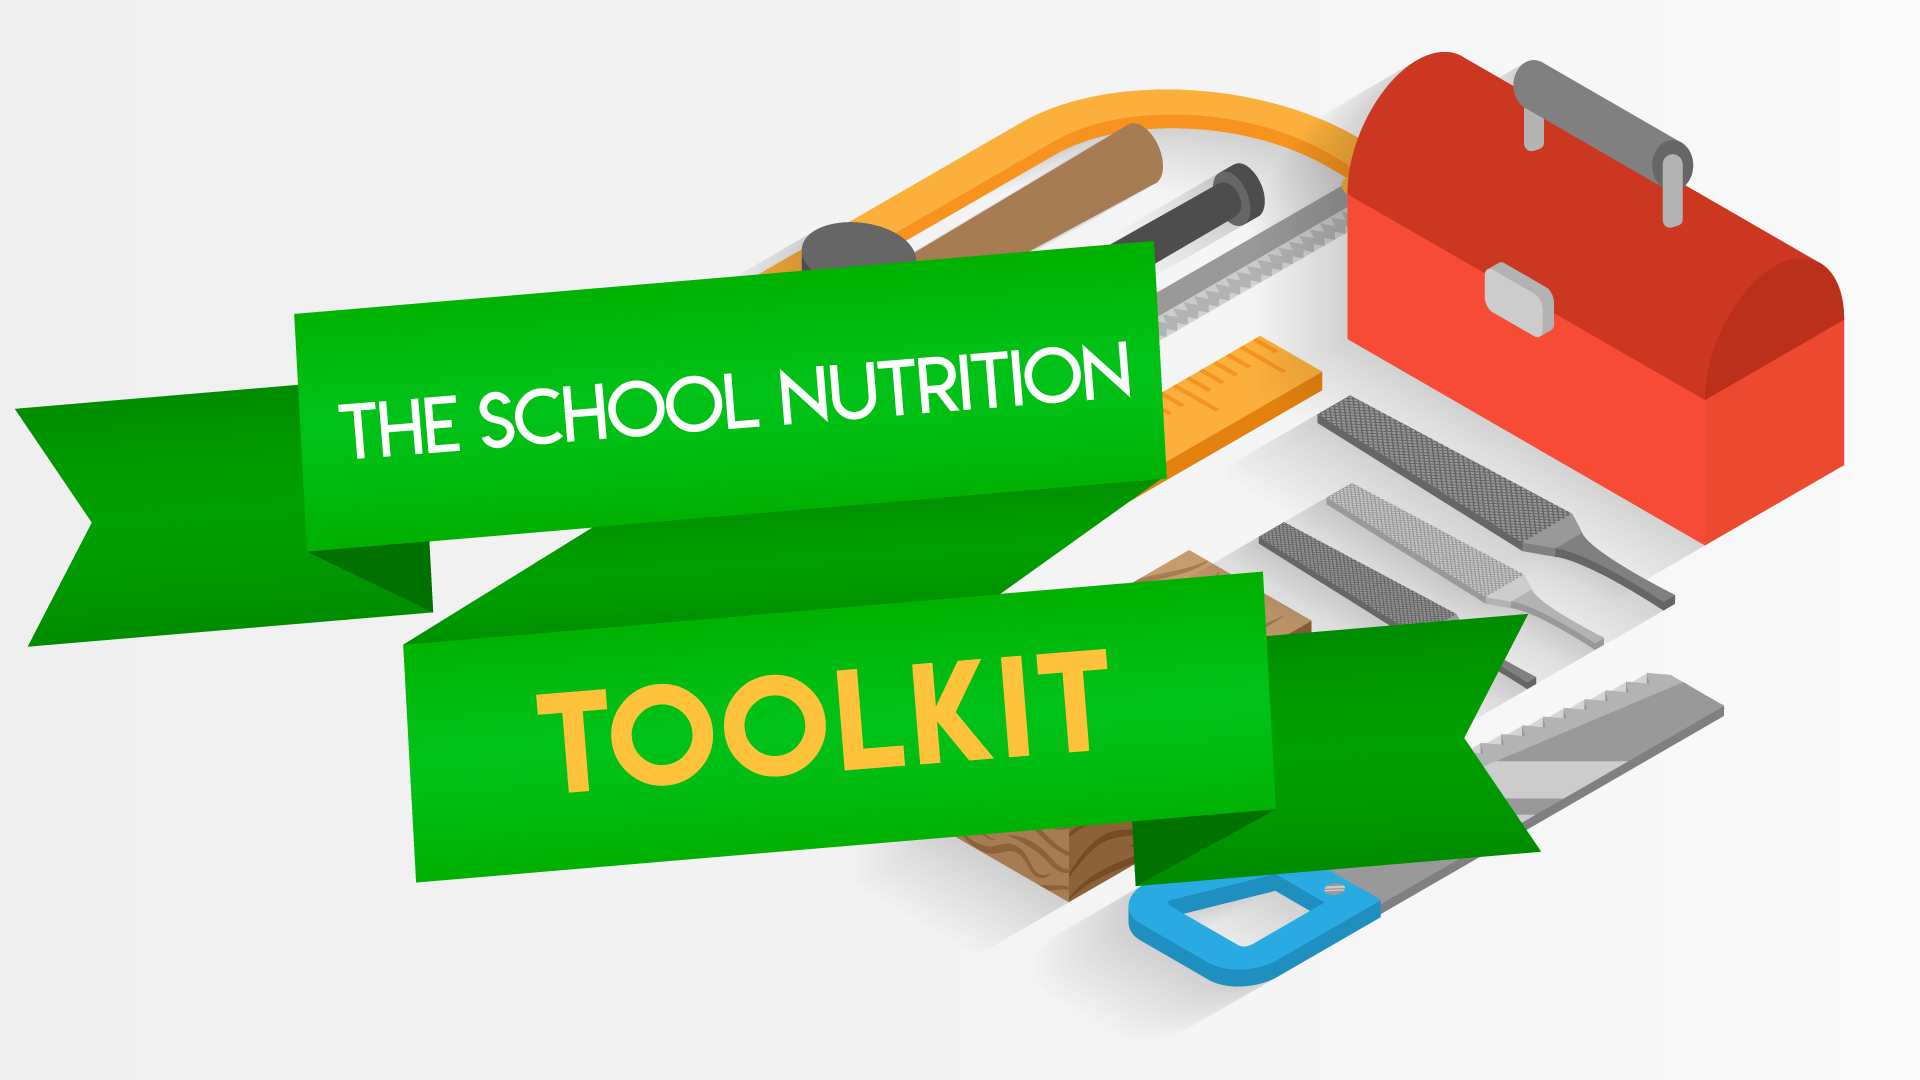 The School Nutrition Toolkit